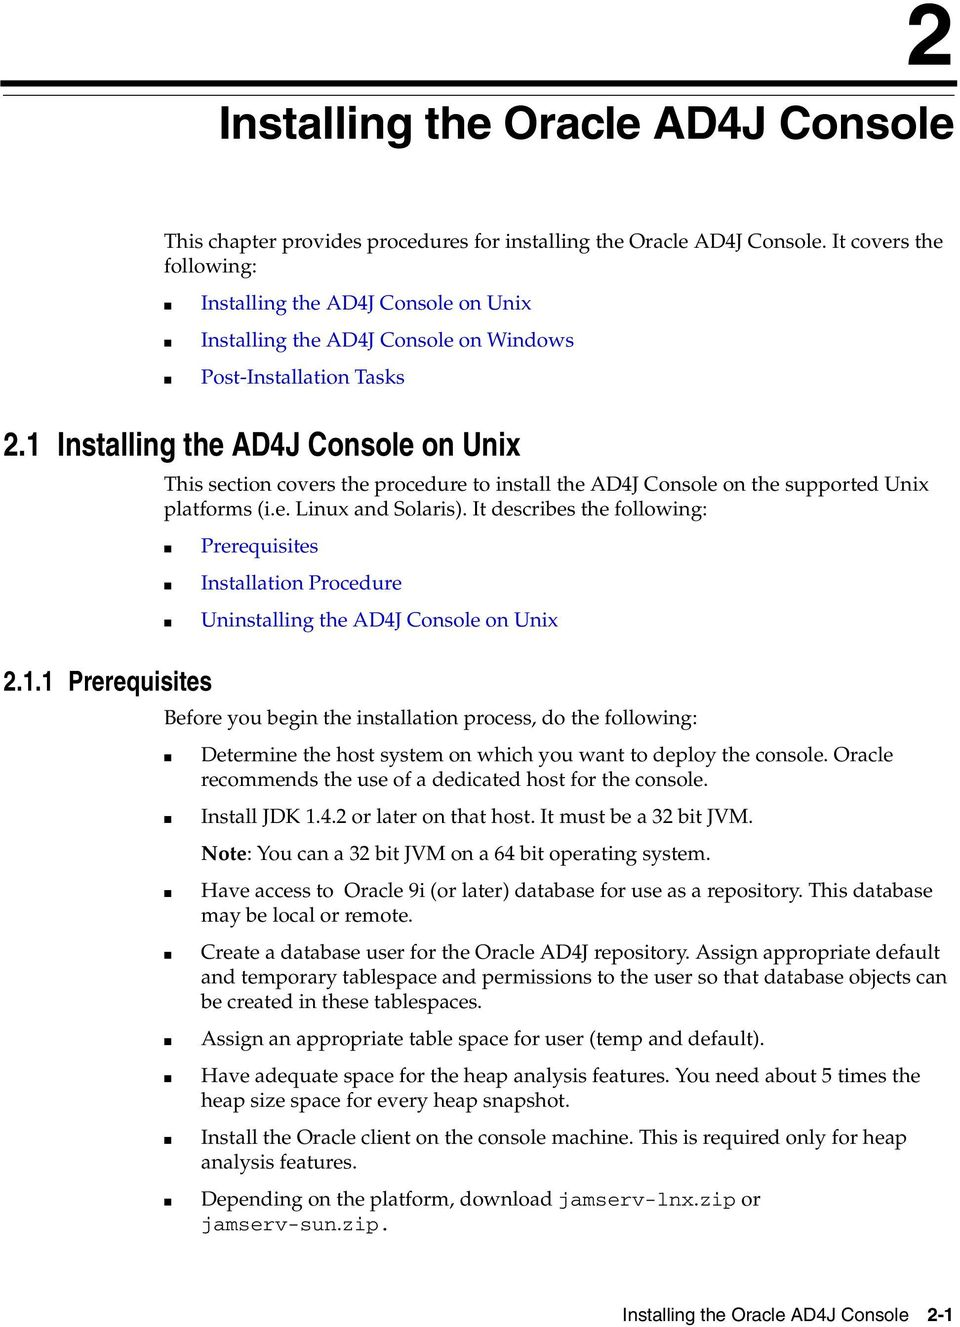 Installing the AD4J Console on Unix 2.1.1 Prerequisites This section covers the procedure to install the AD4J Console on the supported Unix platforms (i.e. Linux and Solaris).